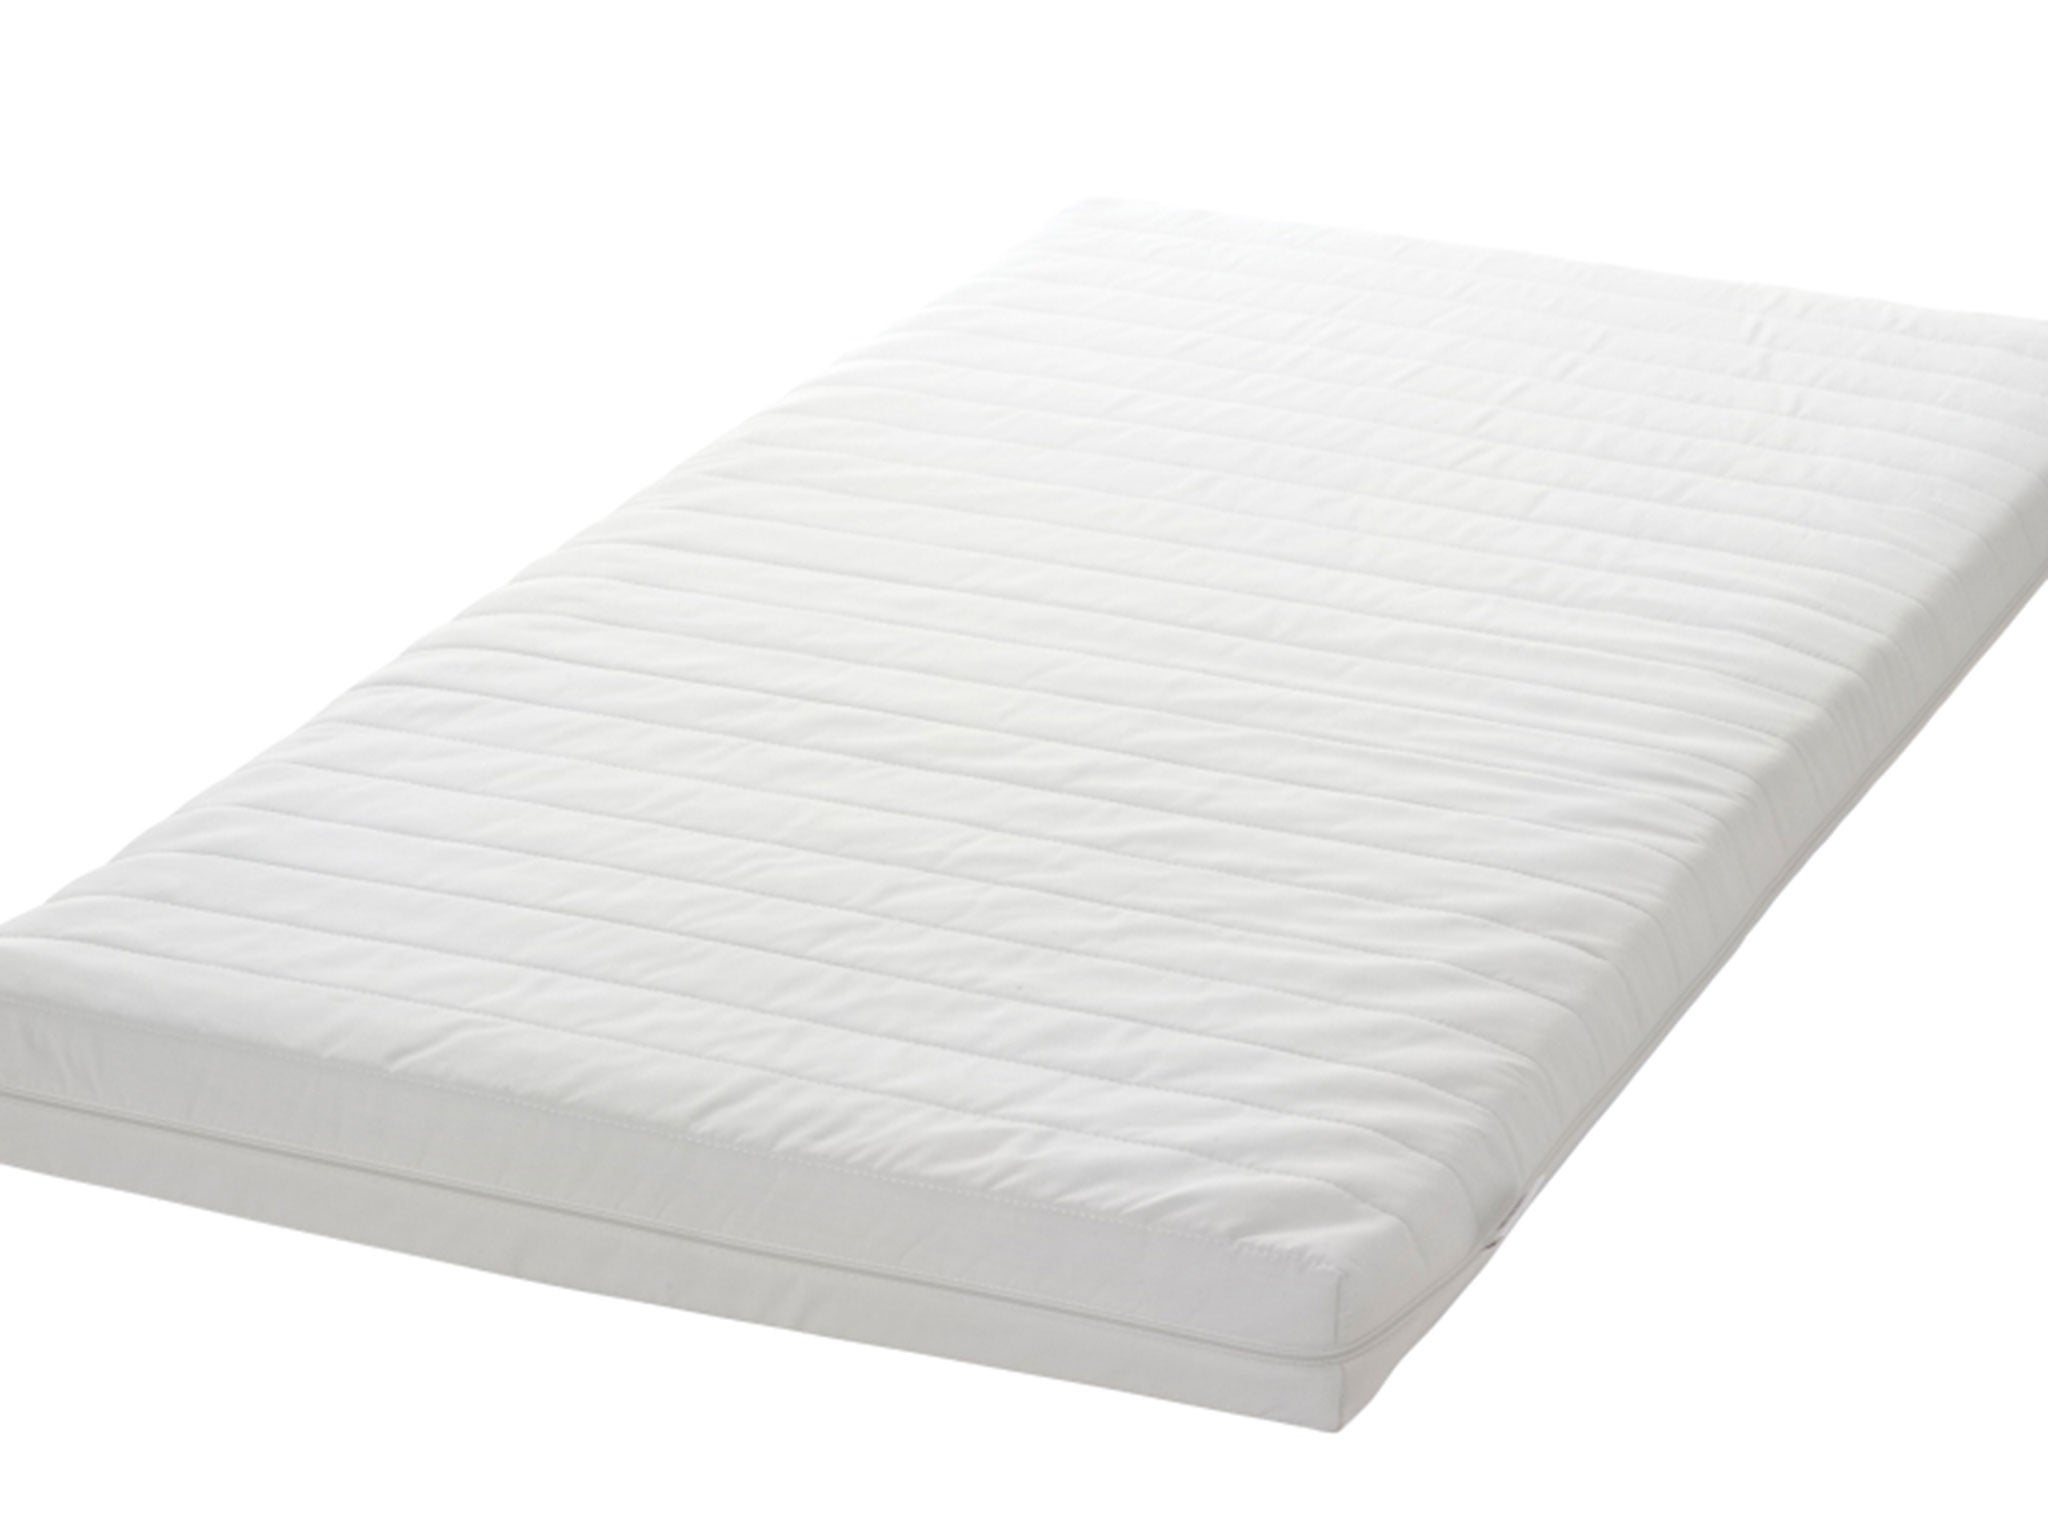 Baby bed ikea uk - Ikea Recalls 169 000 Mattresses Because Babies Risk Being Trapped The Independent